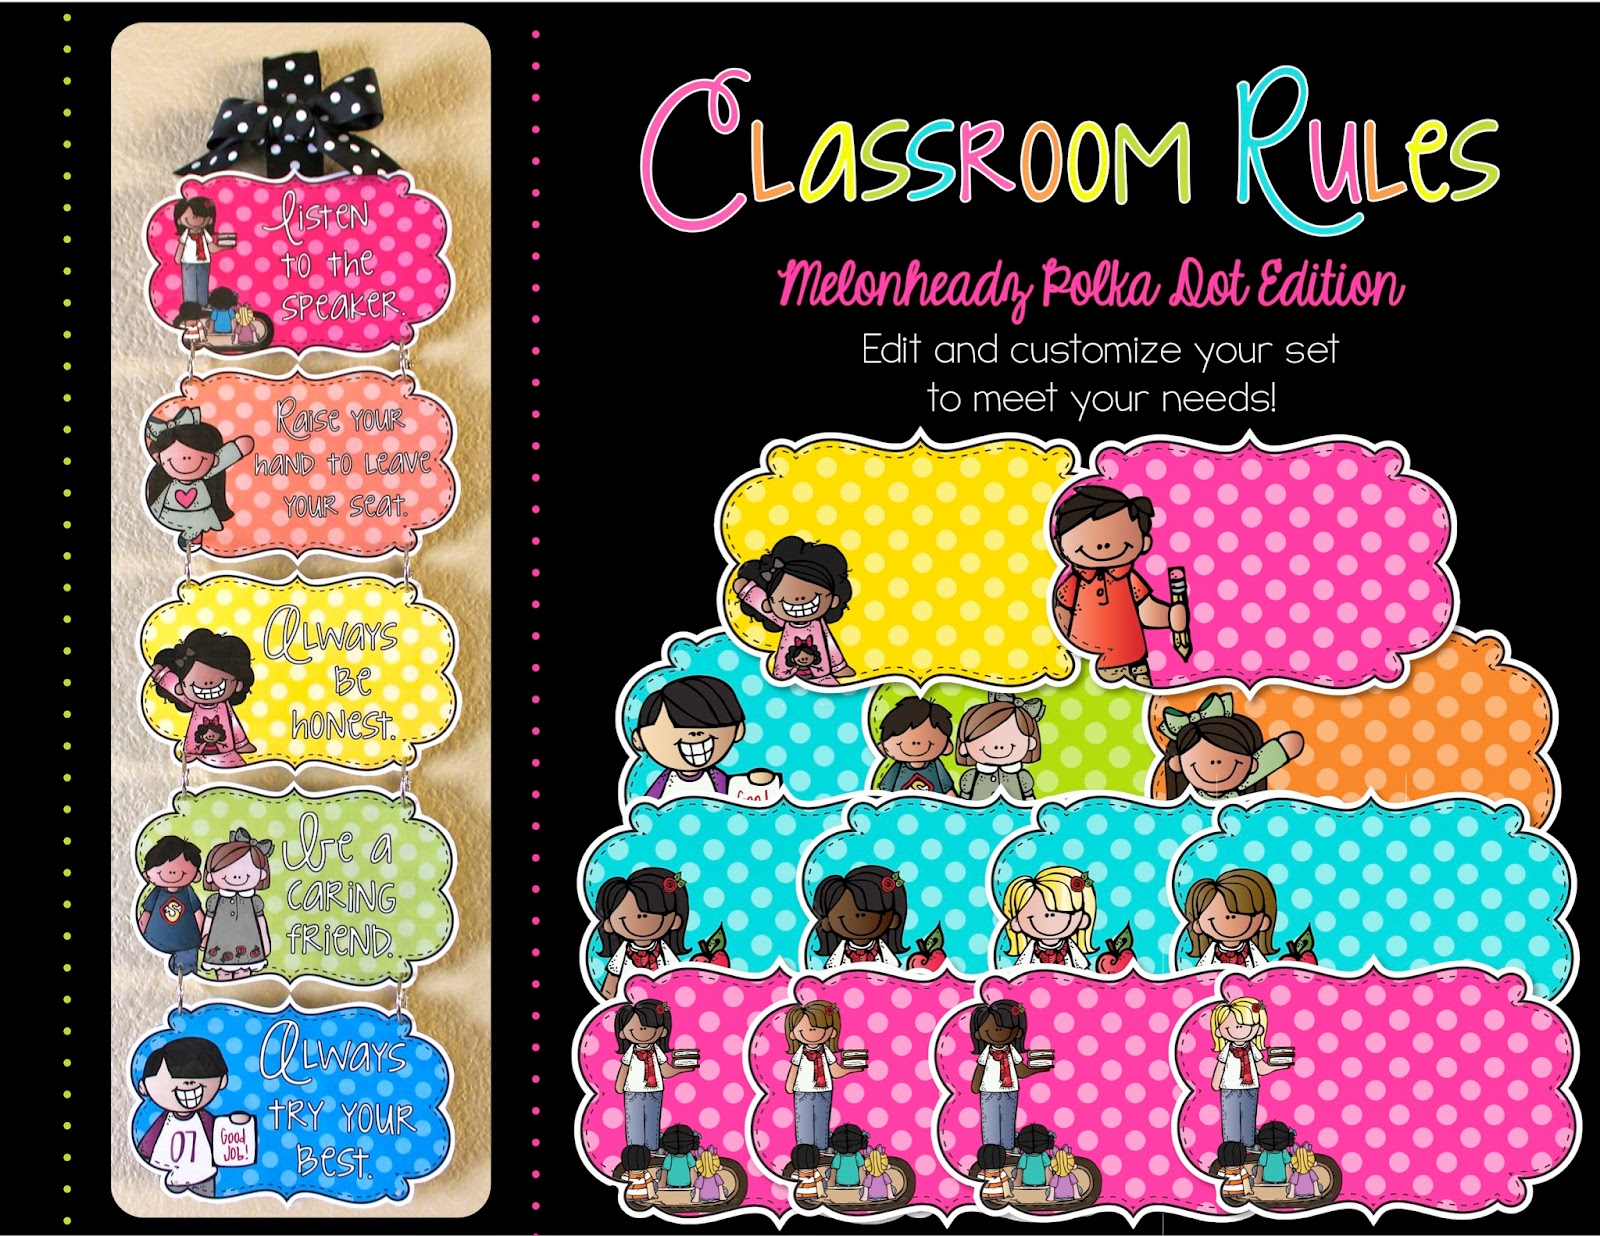 http://www.teacherspayteachers.com/Product/Editable-Classroom-Rules-Melonheadz-Polka-Dot-Edition-1336253